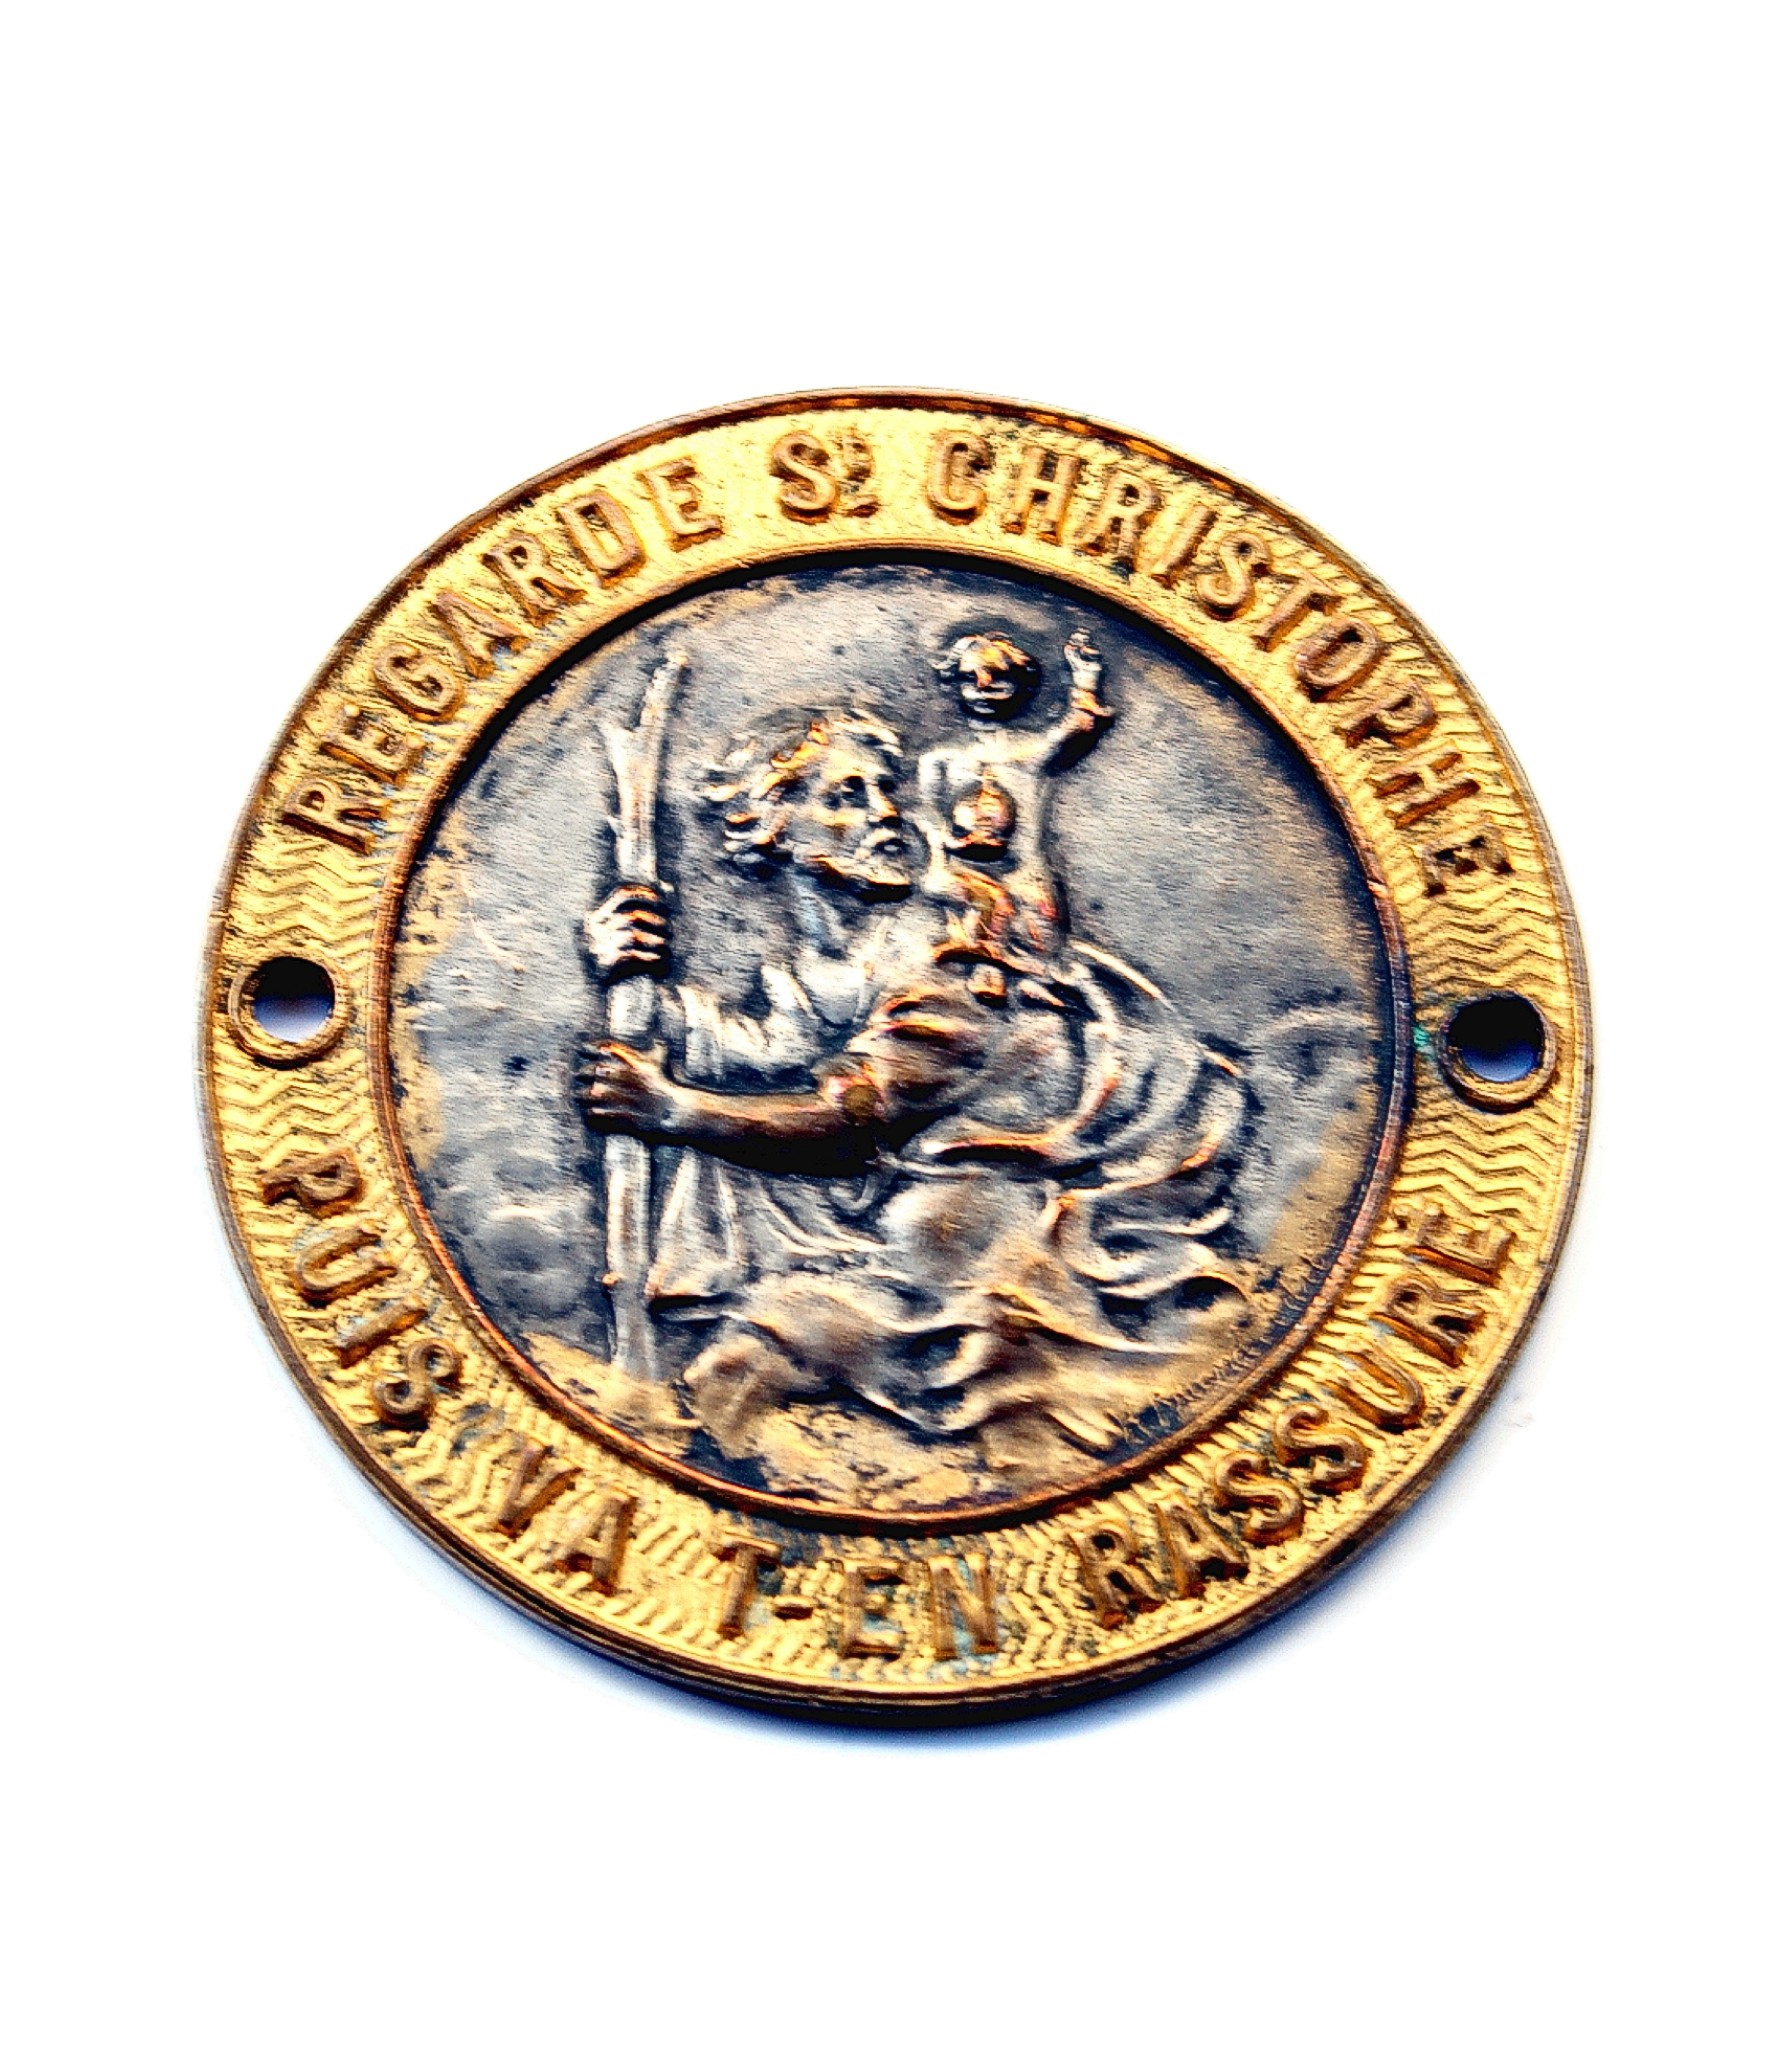 Round St.Christopher badge by Briand